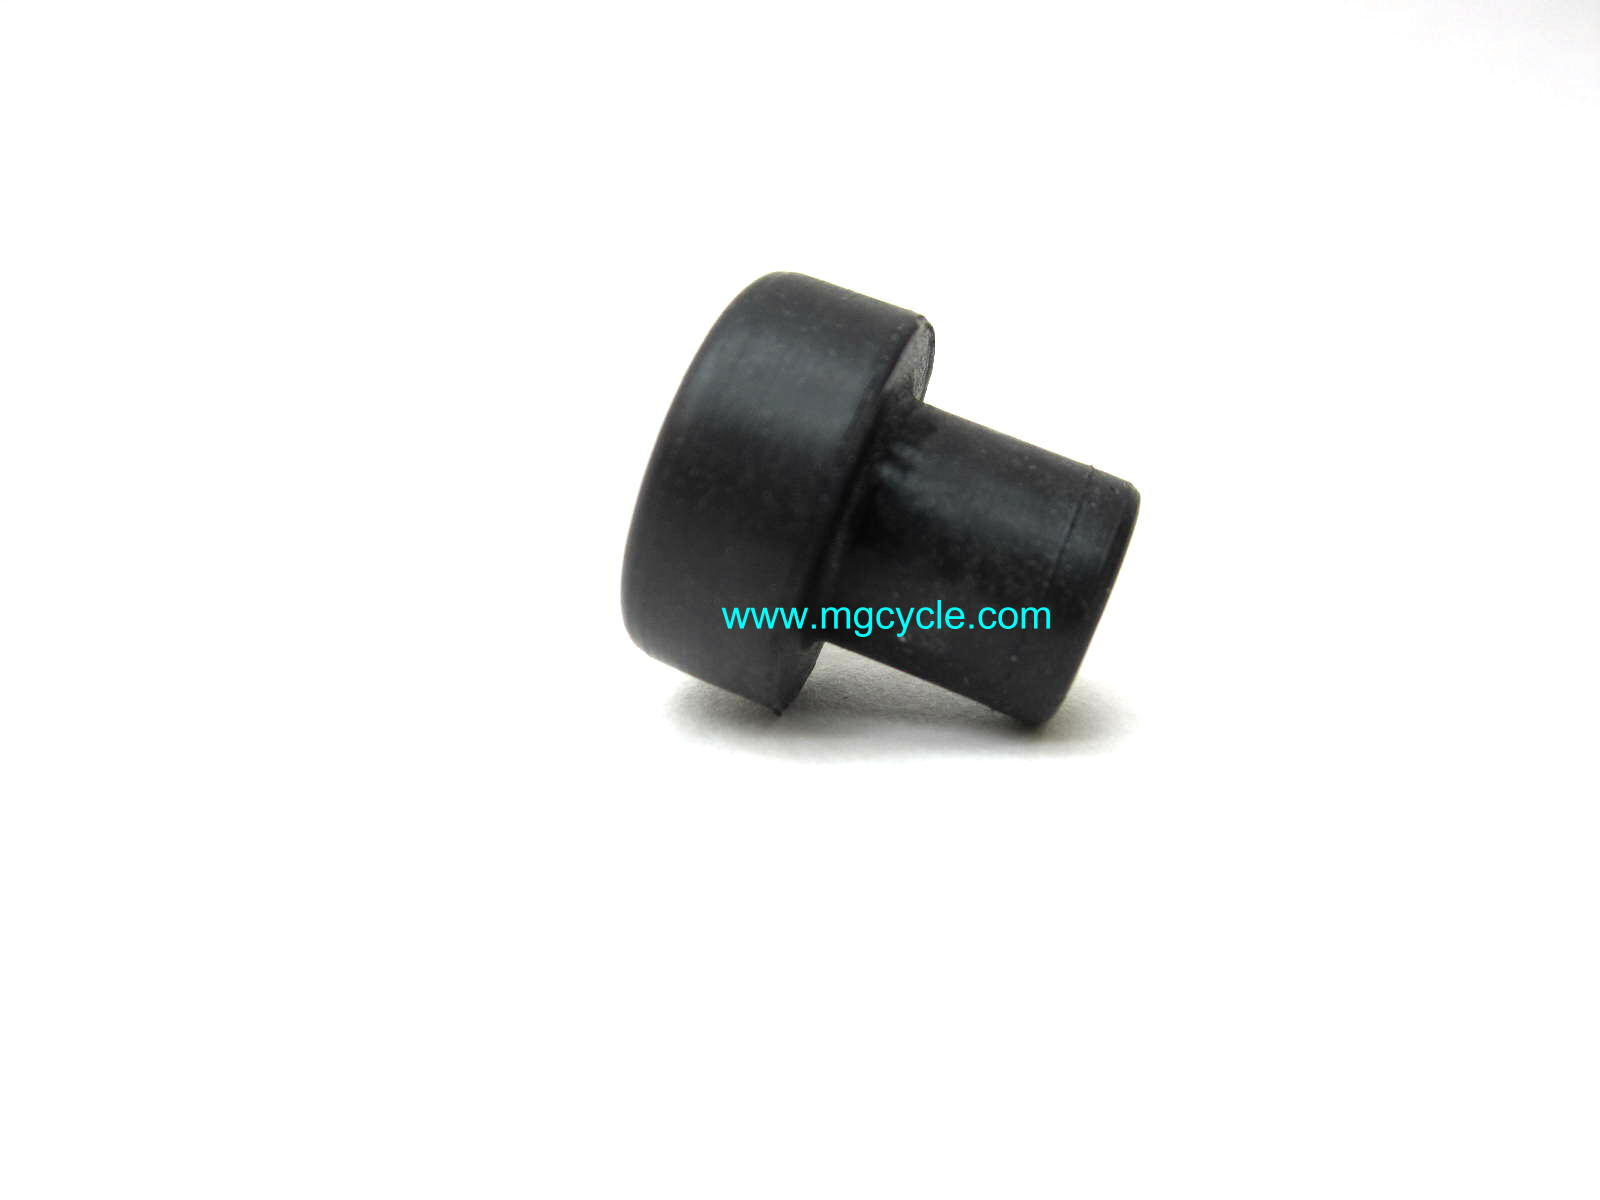 Rubber bumper for side/center stands and other uses GU12433000